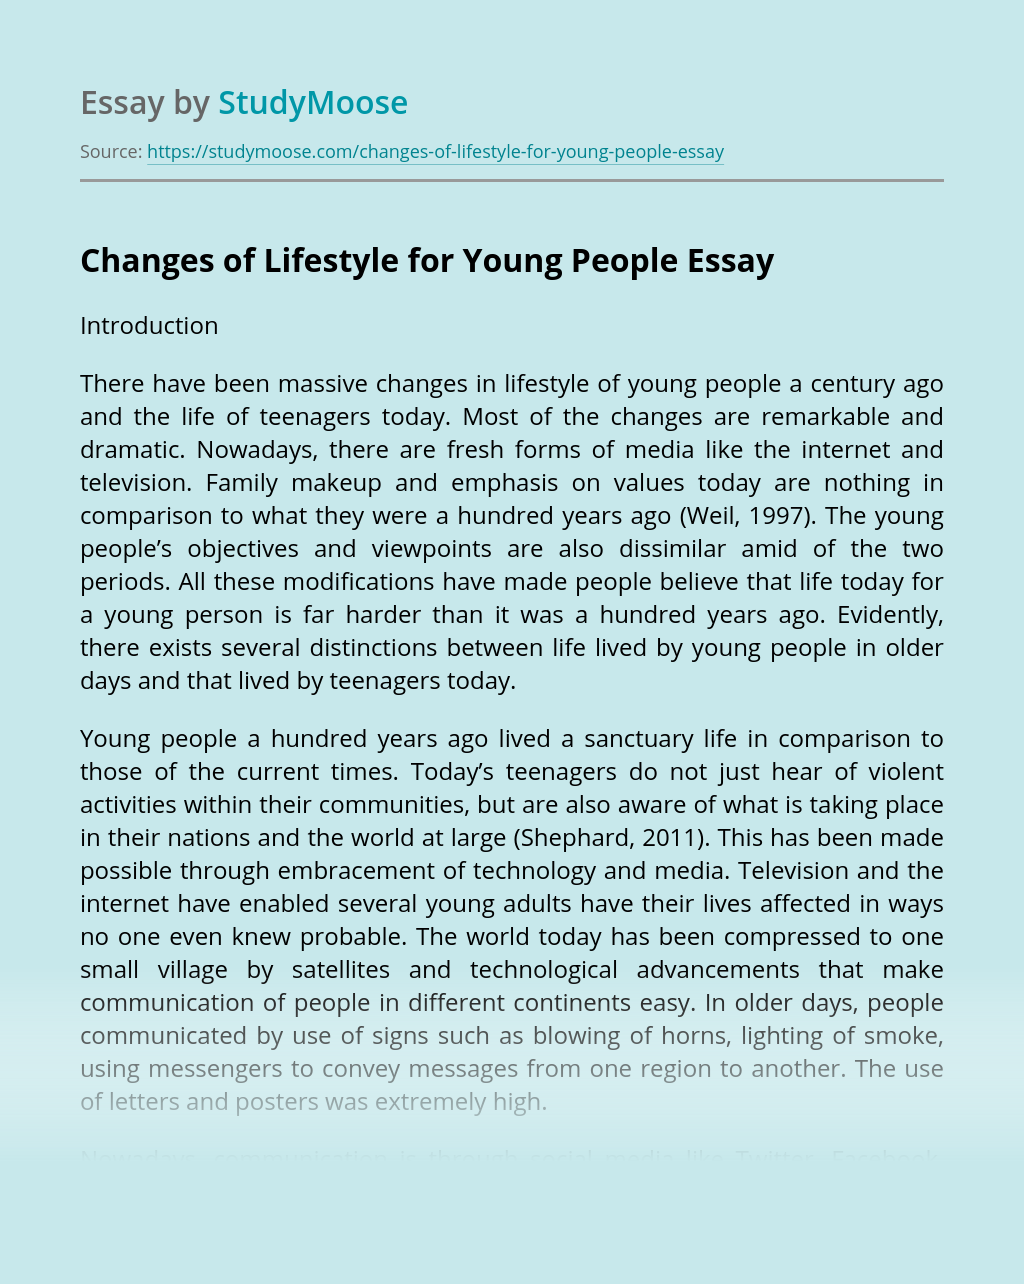 Changes of Lifestyle for Young People